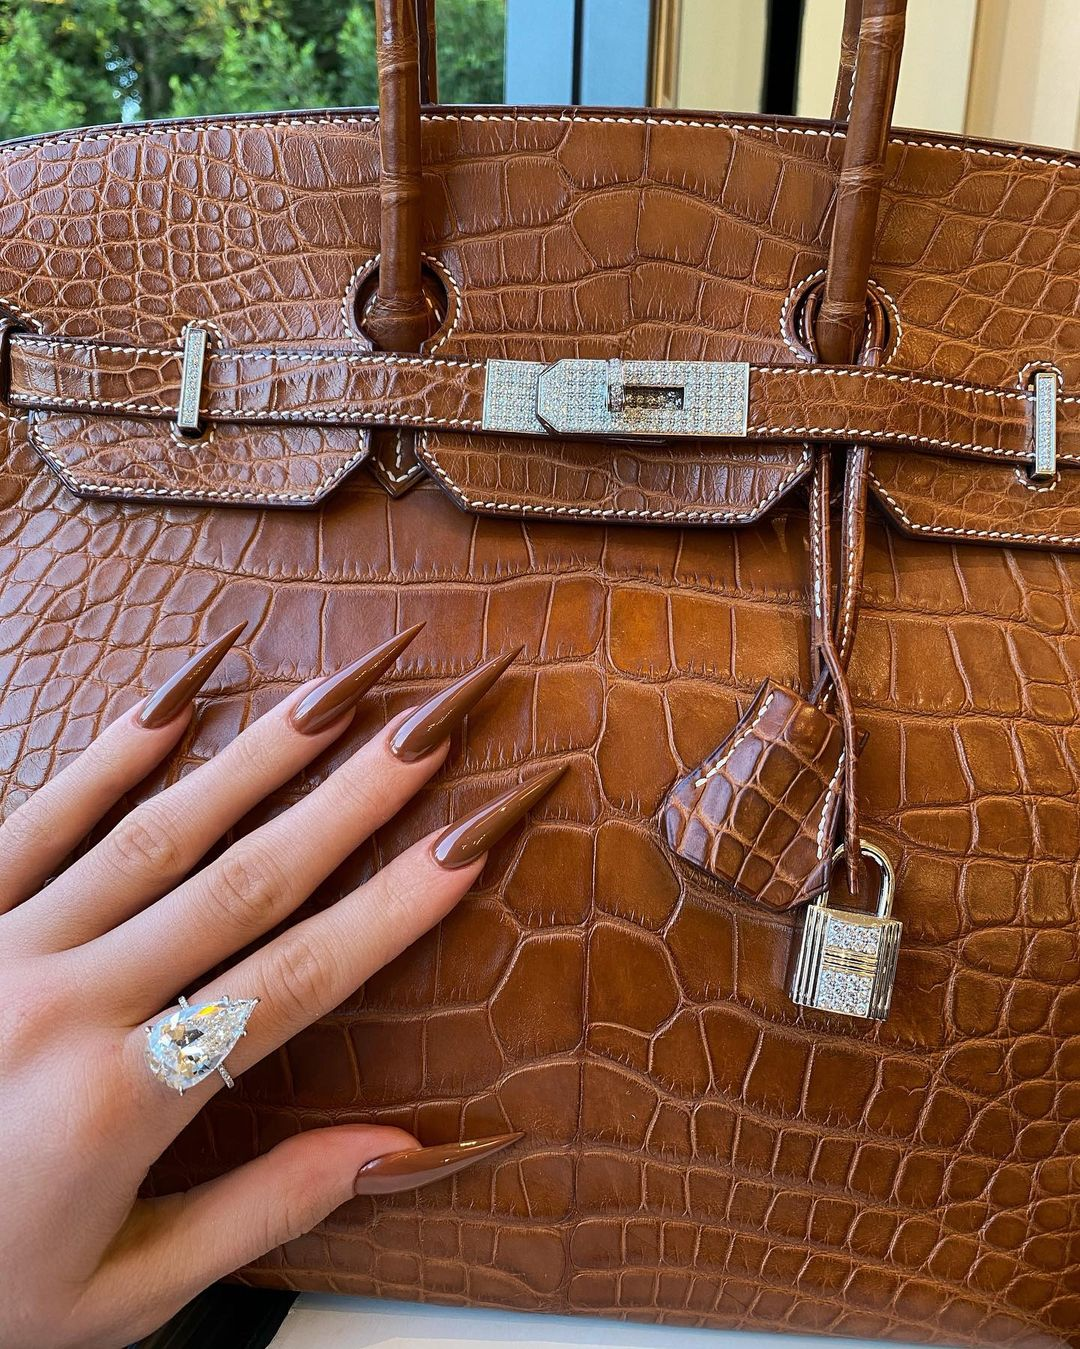 Kylie Jenner Loves To Match Her Nails and Handbag Colour